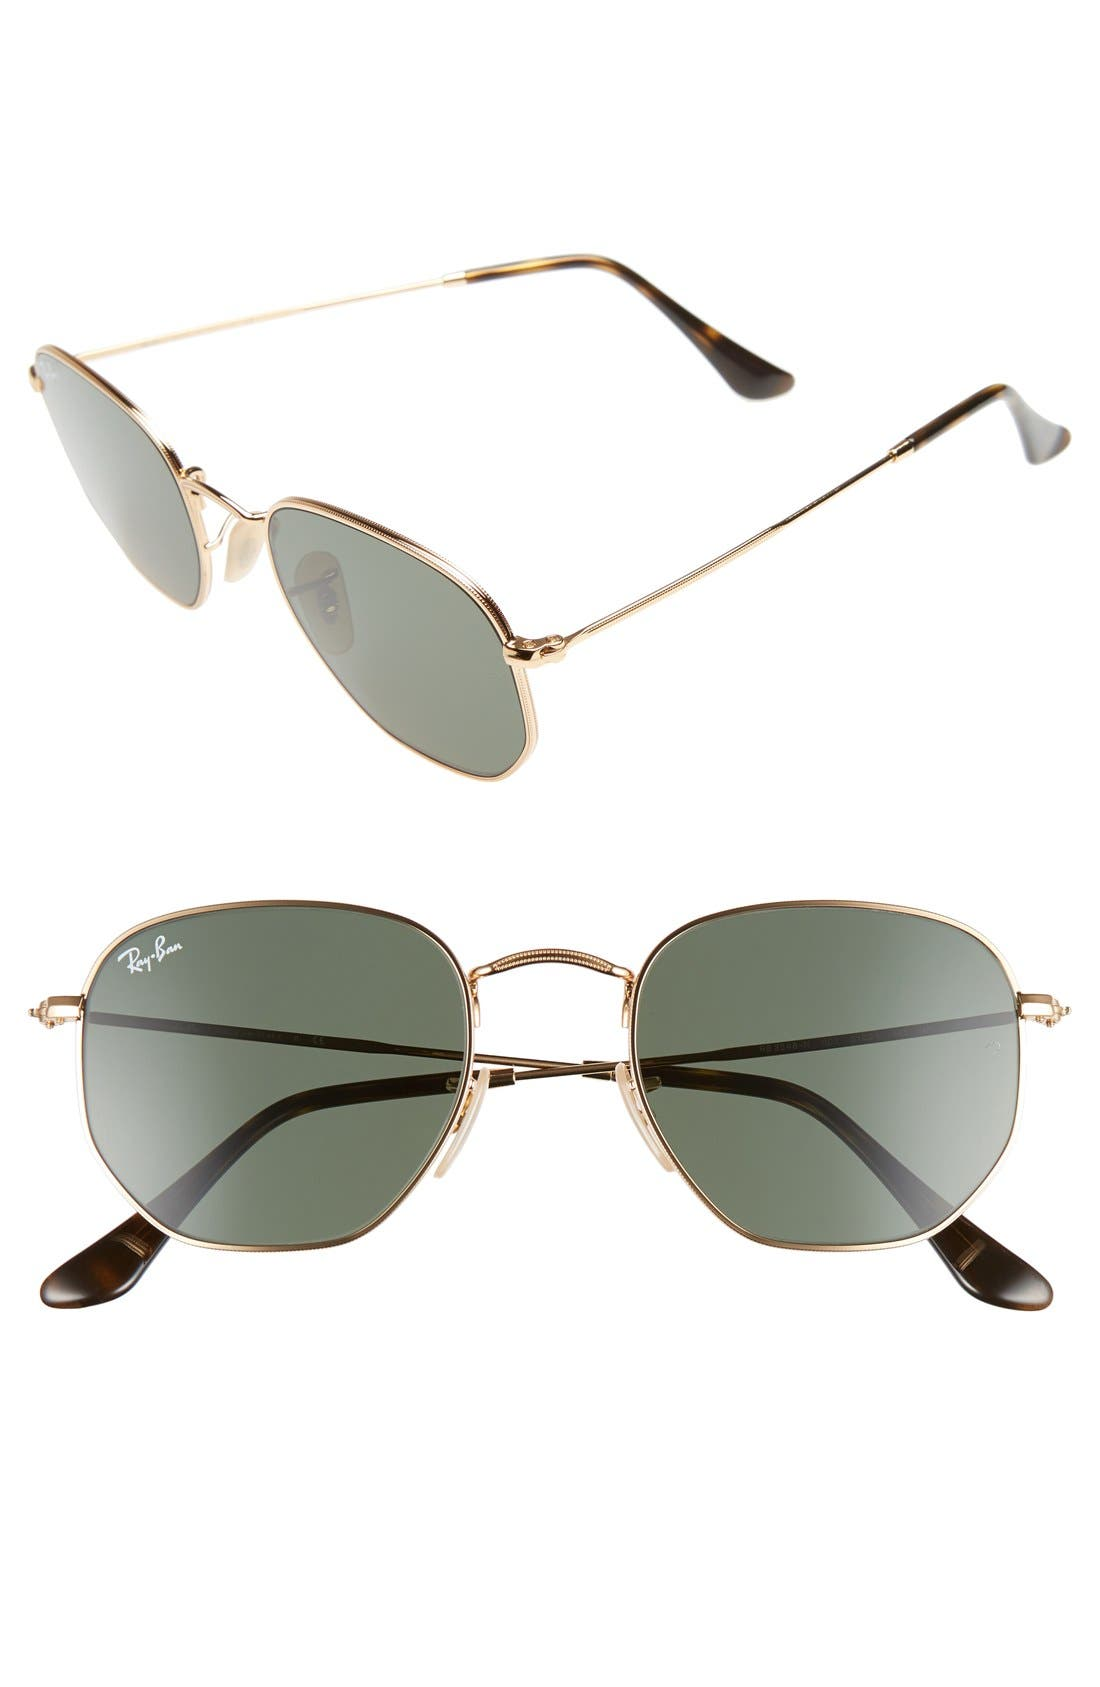 Ray-Ban 51mm Hexagonal Flat Lens Sunglasses